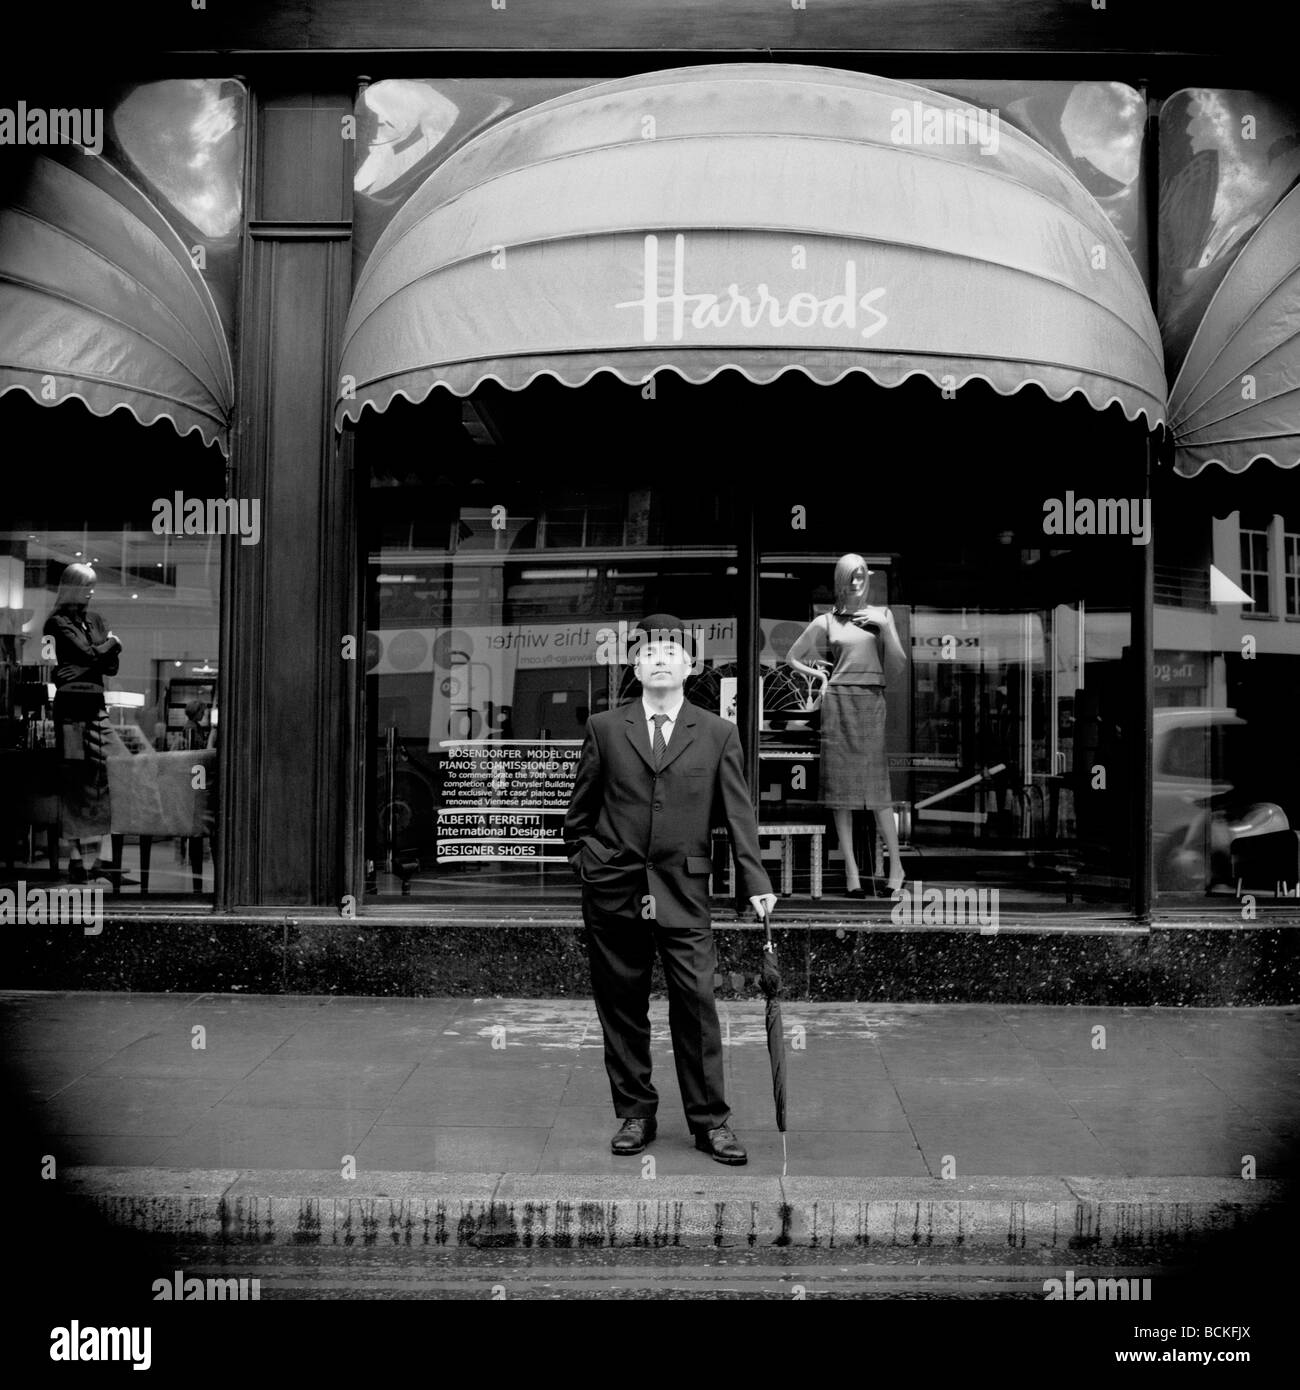 Traditional British city gentleman with bowler hat and umbrella outside Harrods department store, London - Stock Image